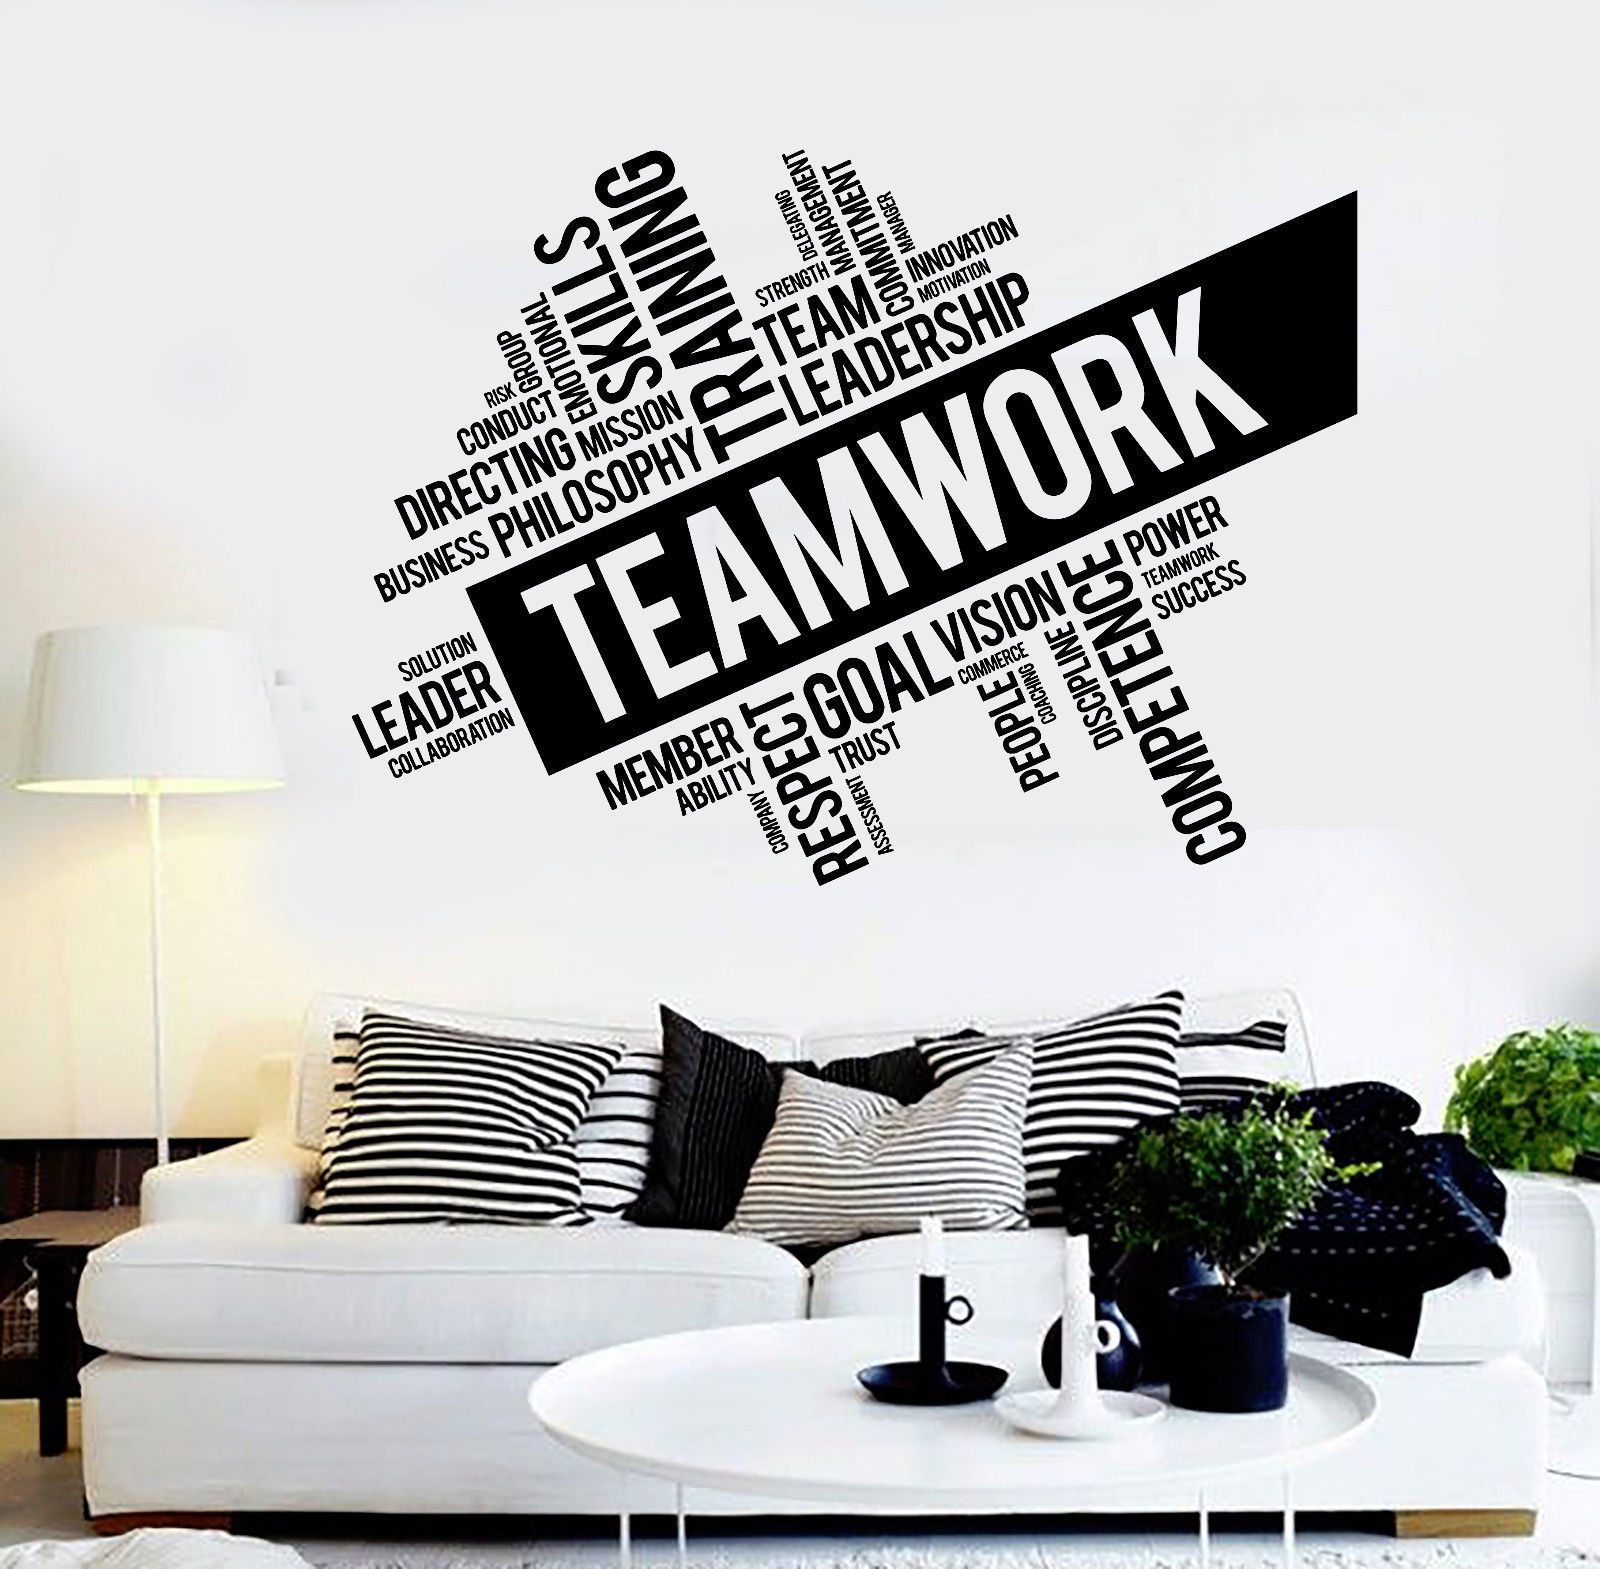 Vinyl wall decal teamwork success office decor worker stickers ig4152